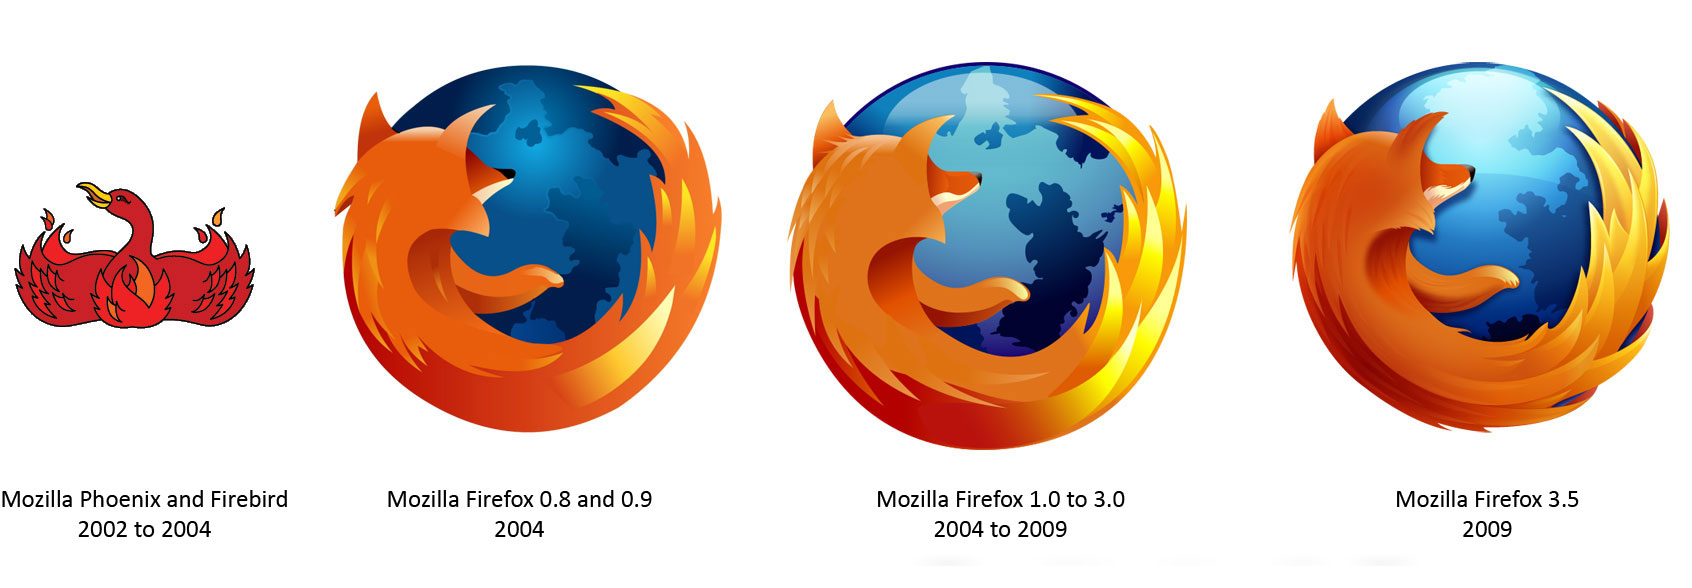 how to use firefox with pages that need java script